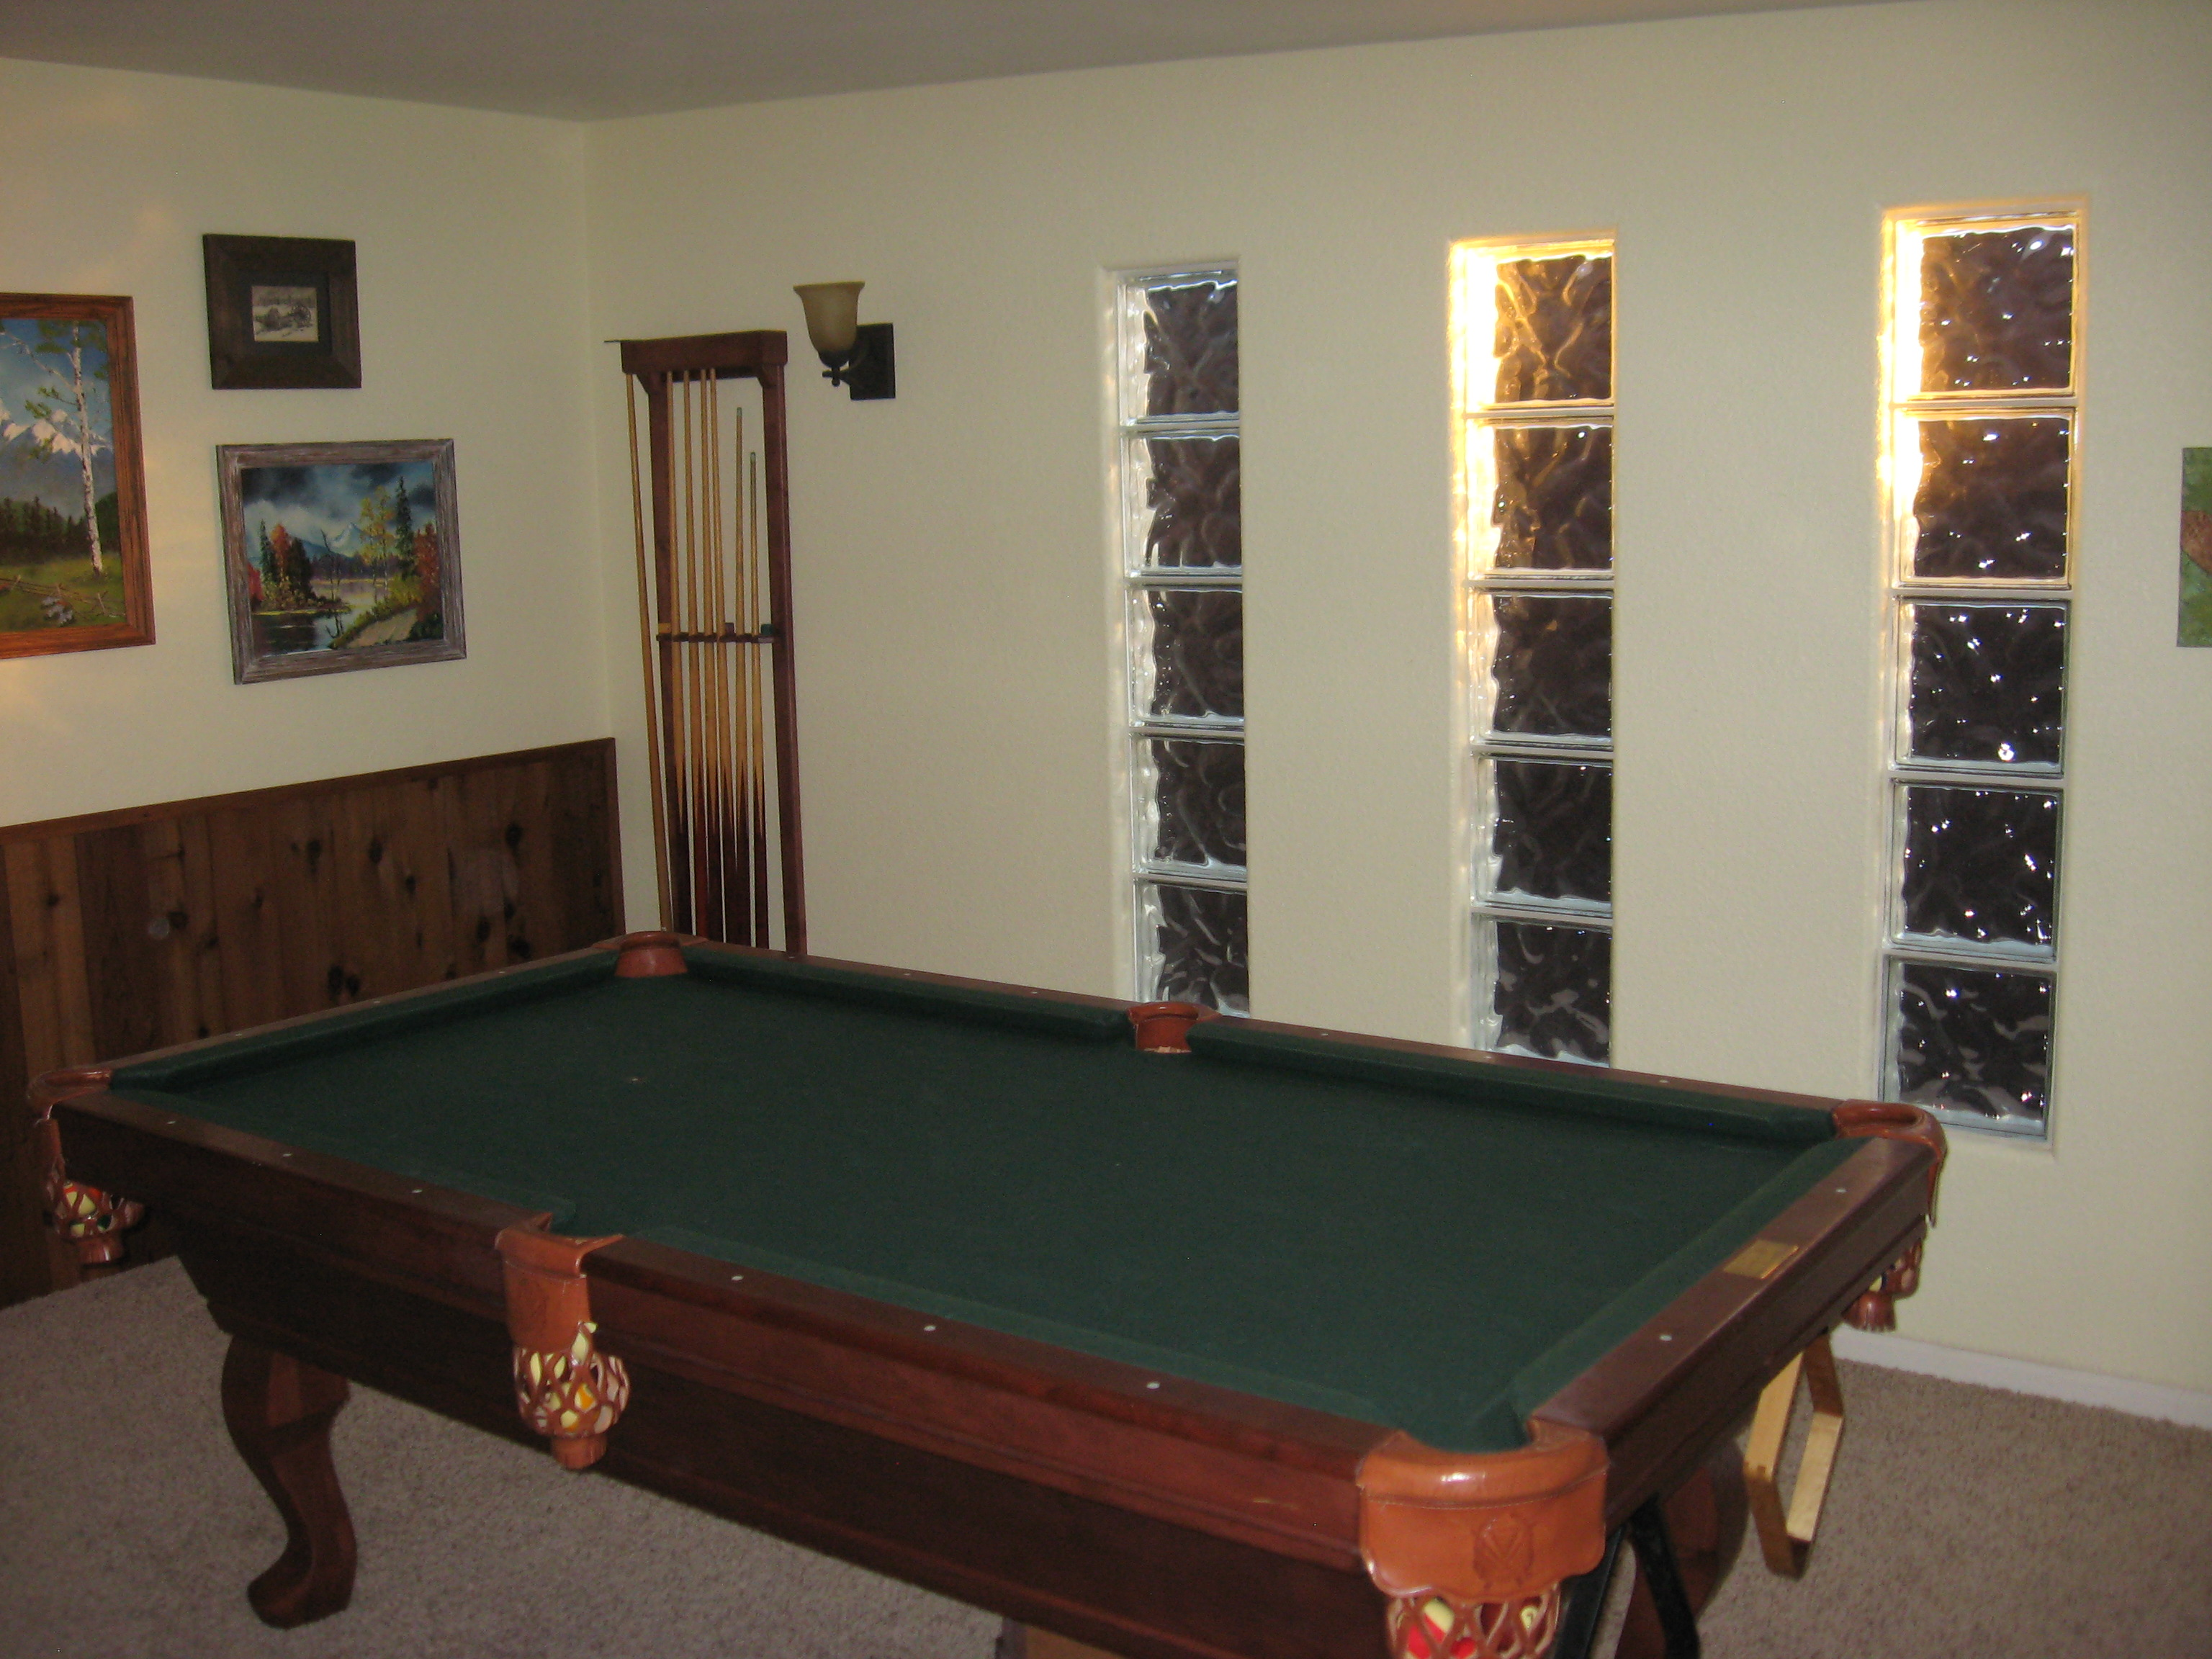 pool table windows image